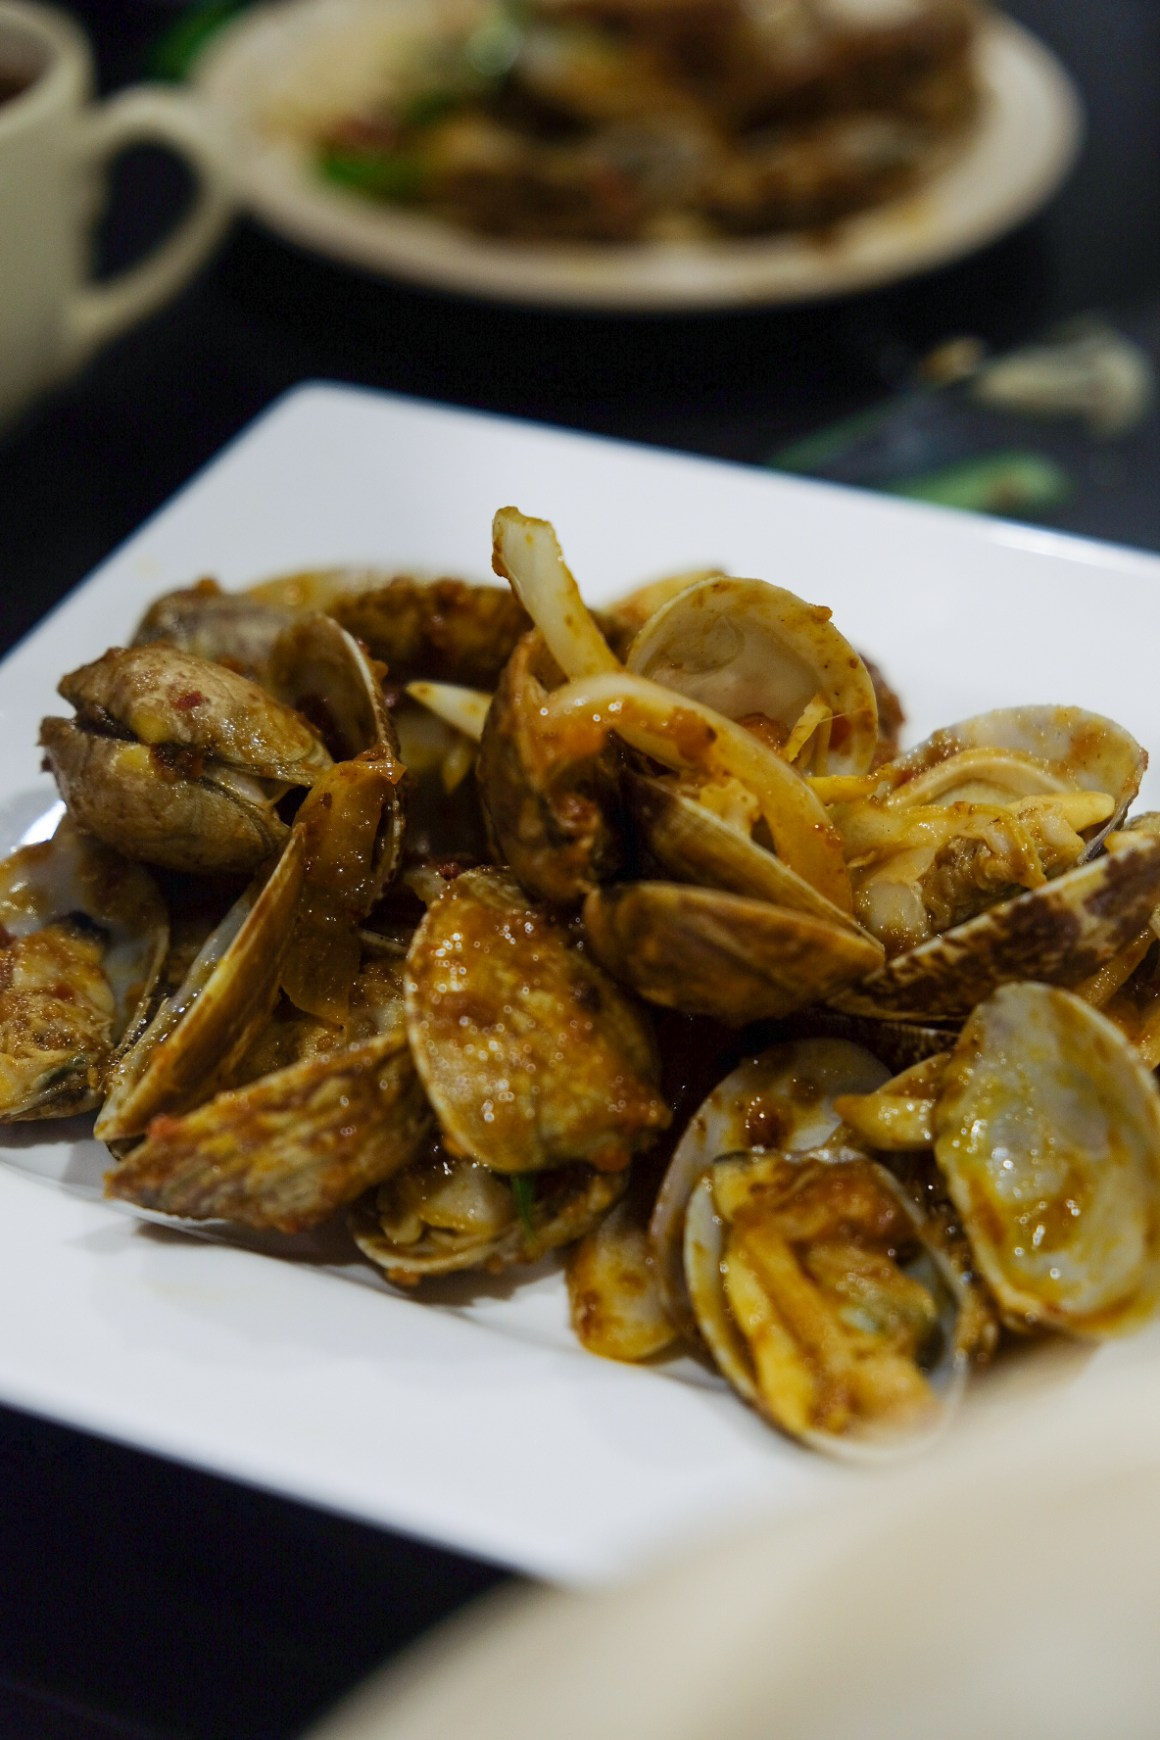 Goldleaf Restaurant Celebrates 48th Anniversary With $5.40 dishes - Sambal Belacan Flower Clams